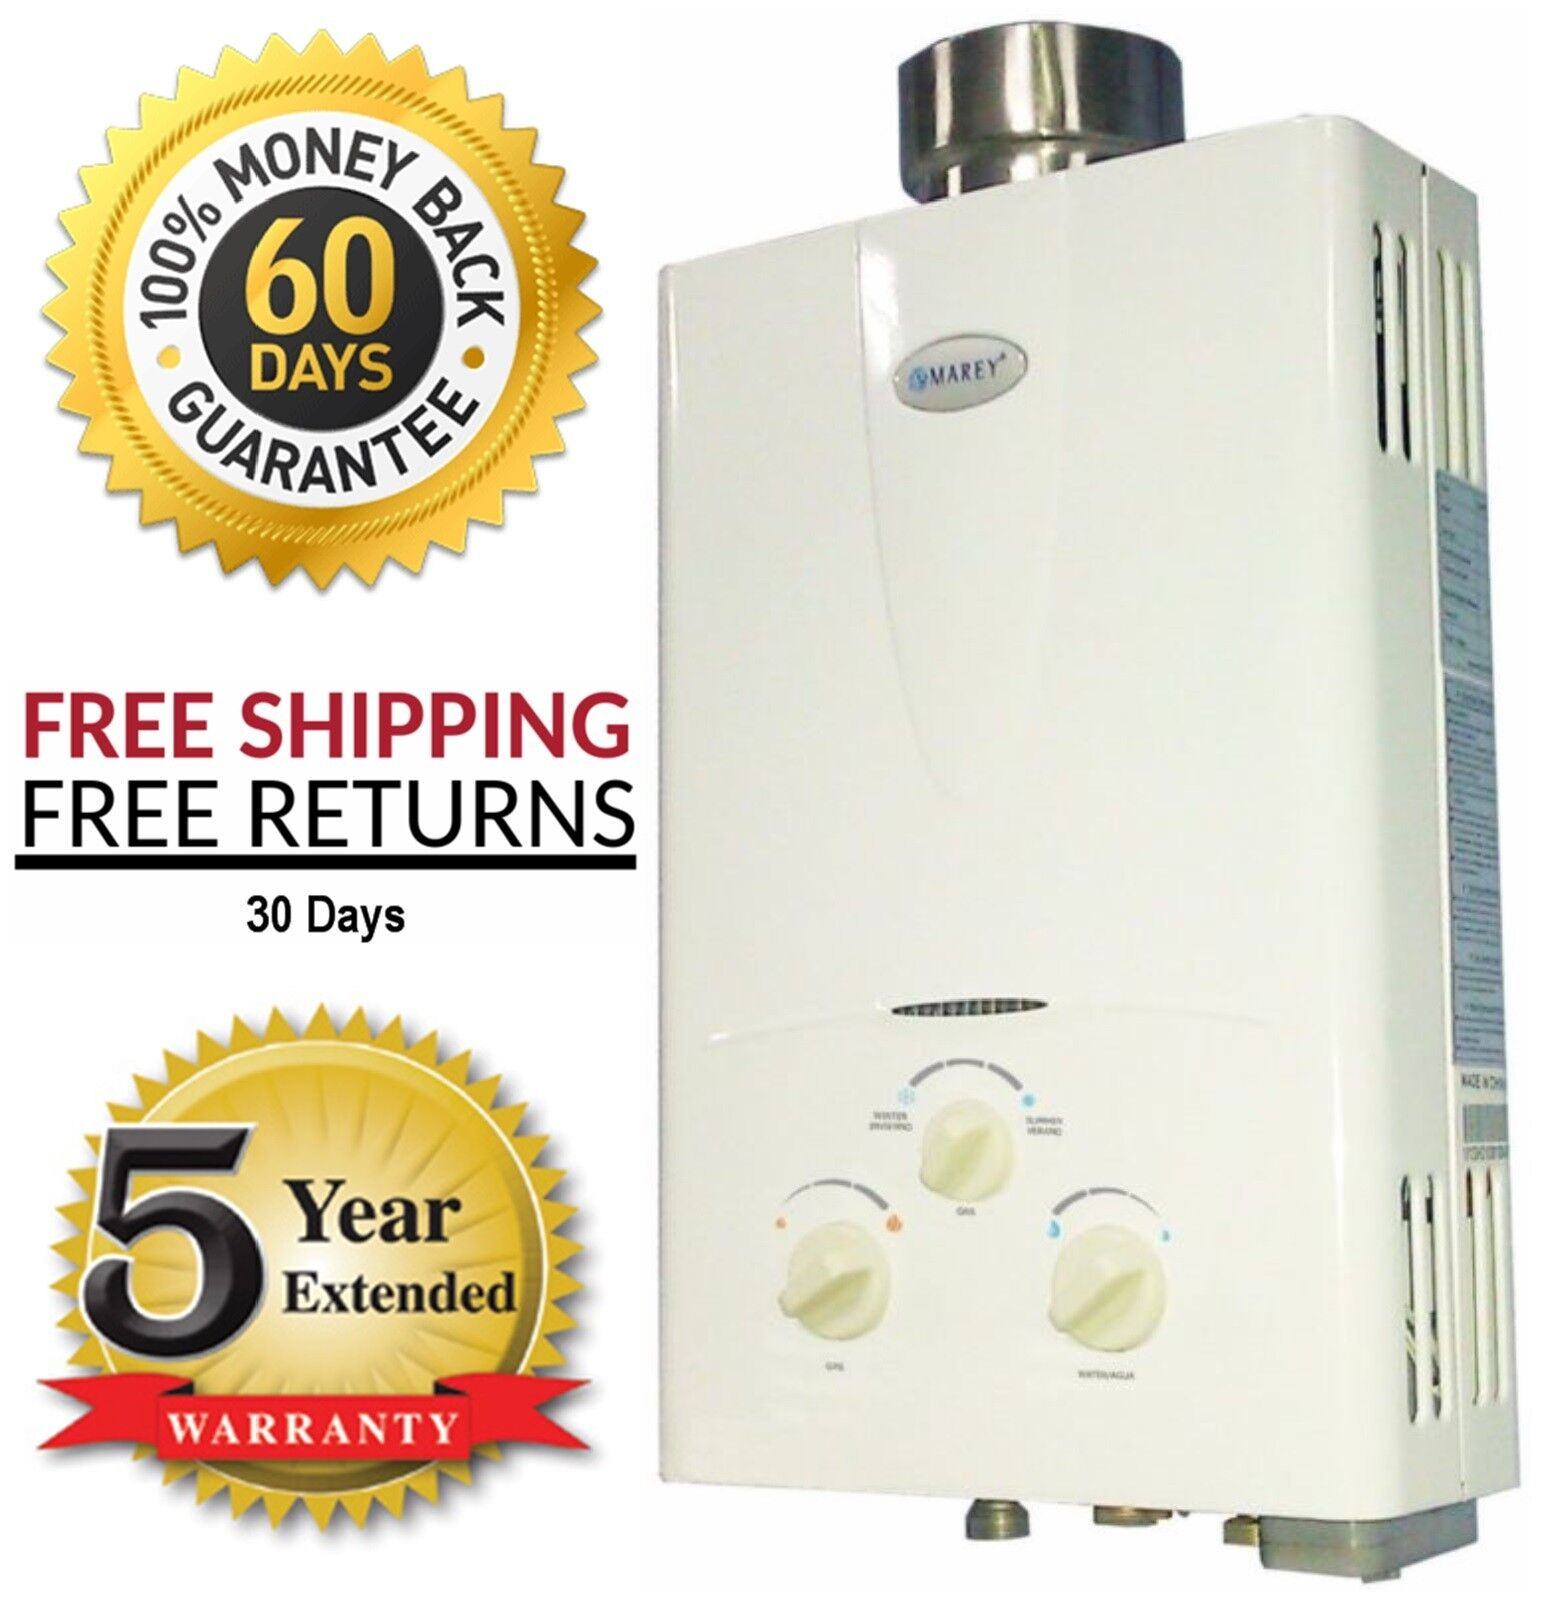 Marey Tankless Water Heater Manual Marey Tankless Water